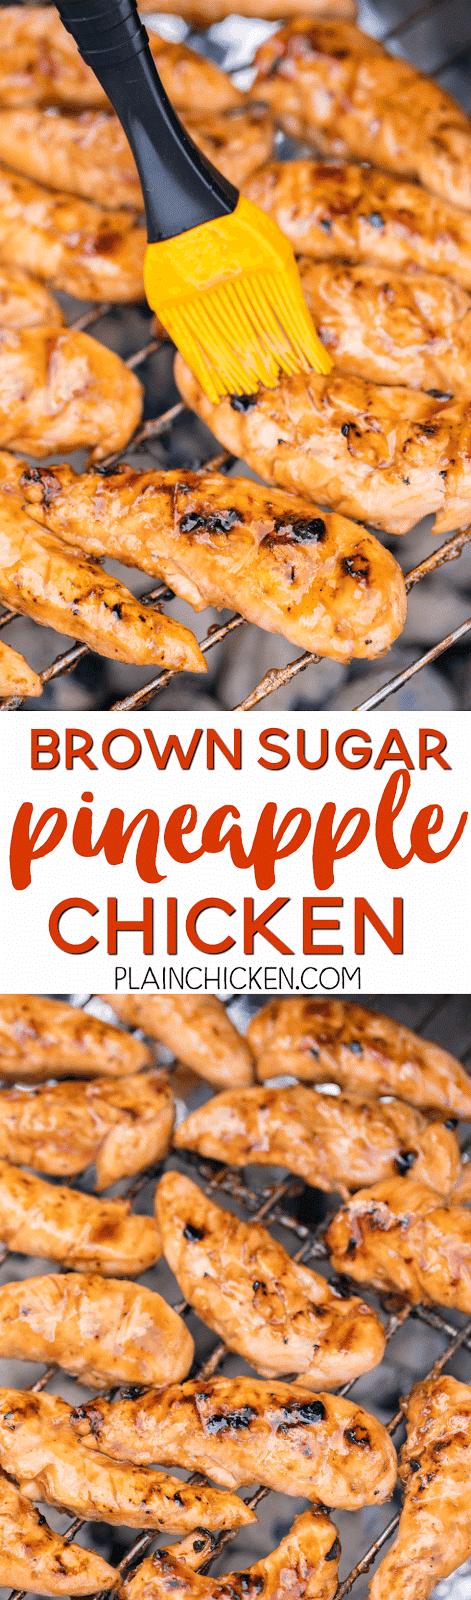 Brown Sugar Pineapple Chicken - only 4 ingredients! SO good!!! We actually made it twice in one week. Pineapple juice, brown sugar, BBQ sauce and chicken. Such an easy weeknight meal.